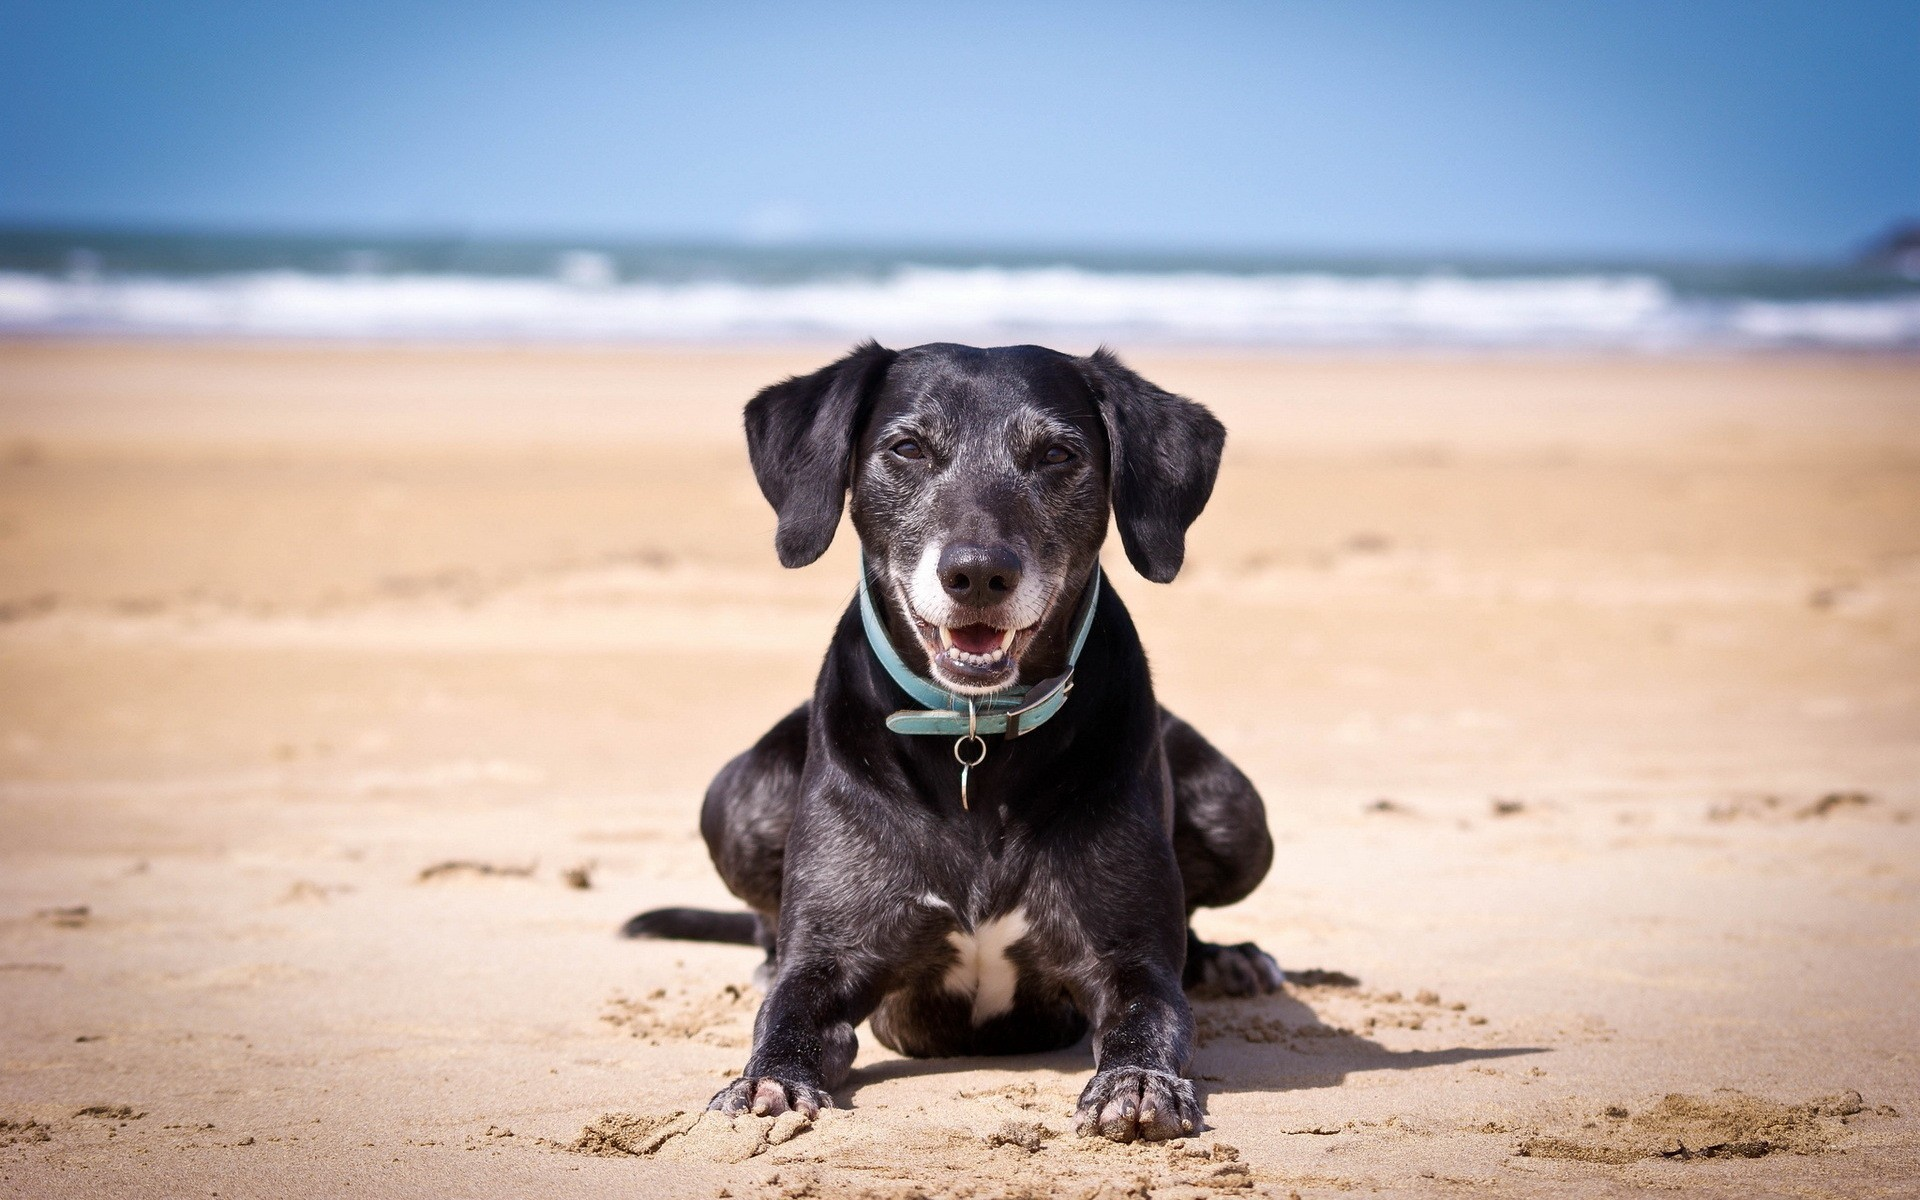 Iphone X Sand Wallpaper Happy Dogt By The Sea Wallpapers Happy Dogt By The Sea